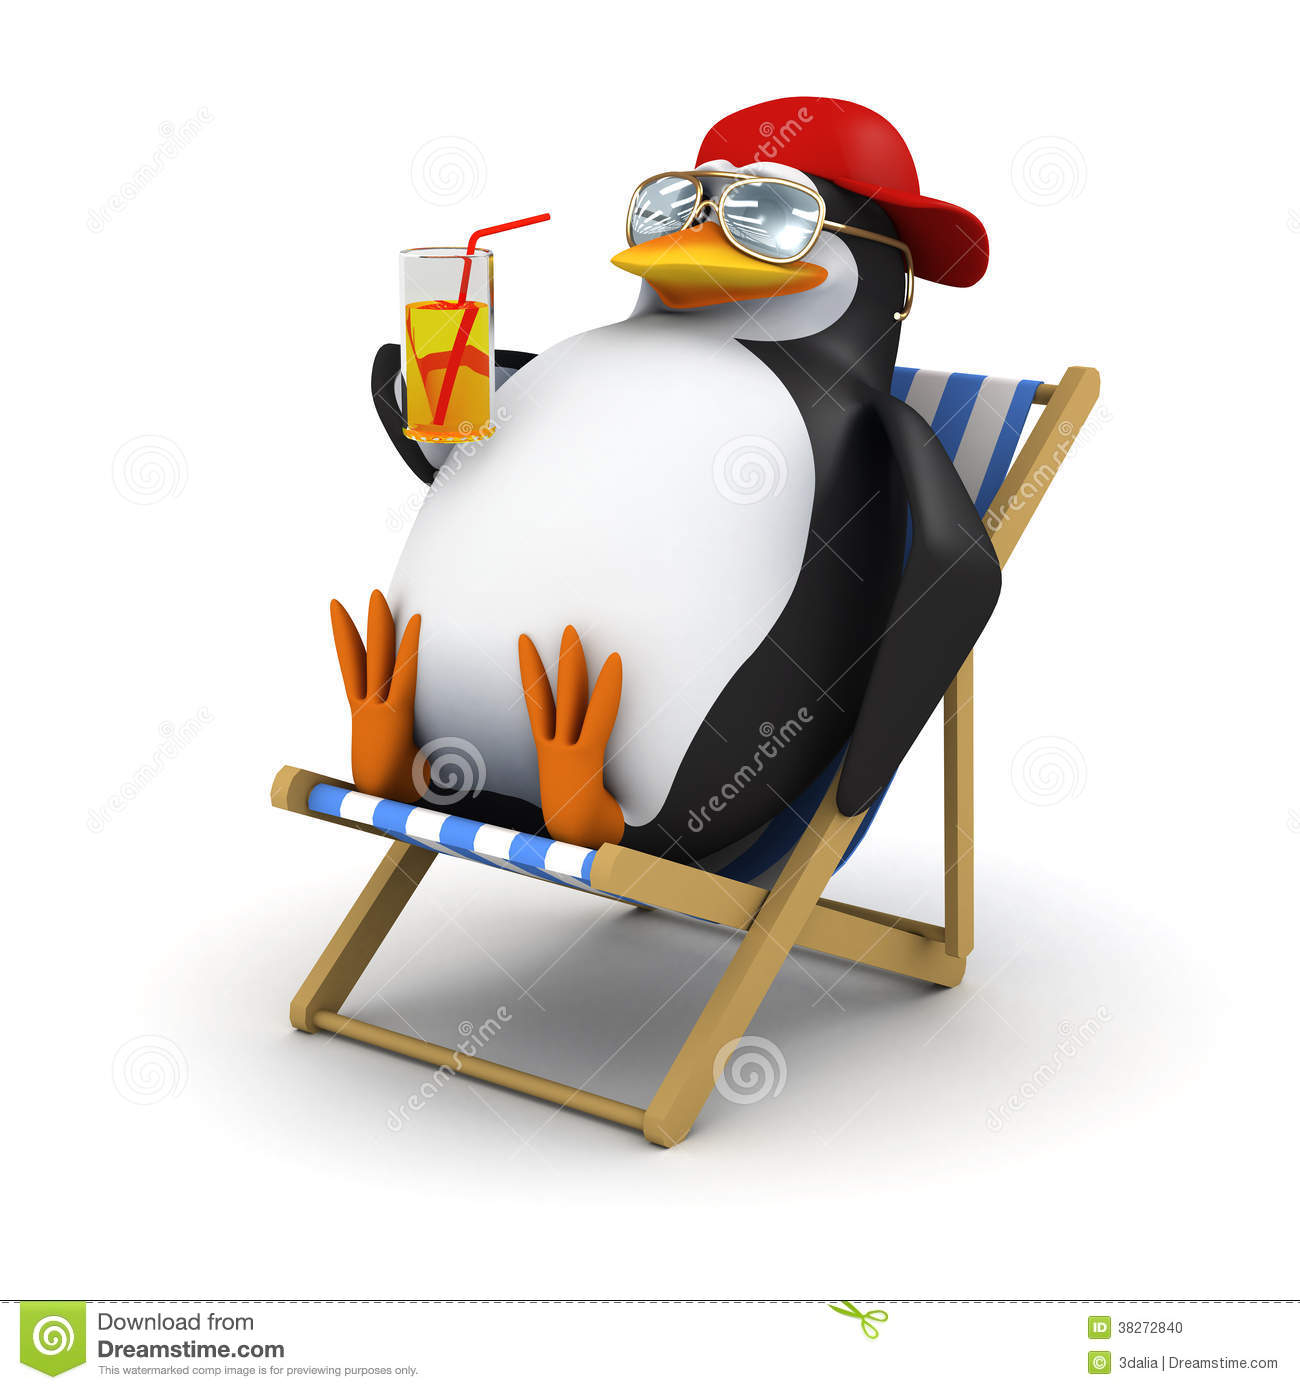 pinguin 3d entspannt sich im deckchair stock abbildung. Black Bedroom Furniture Sets. Home Design Ideas